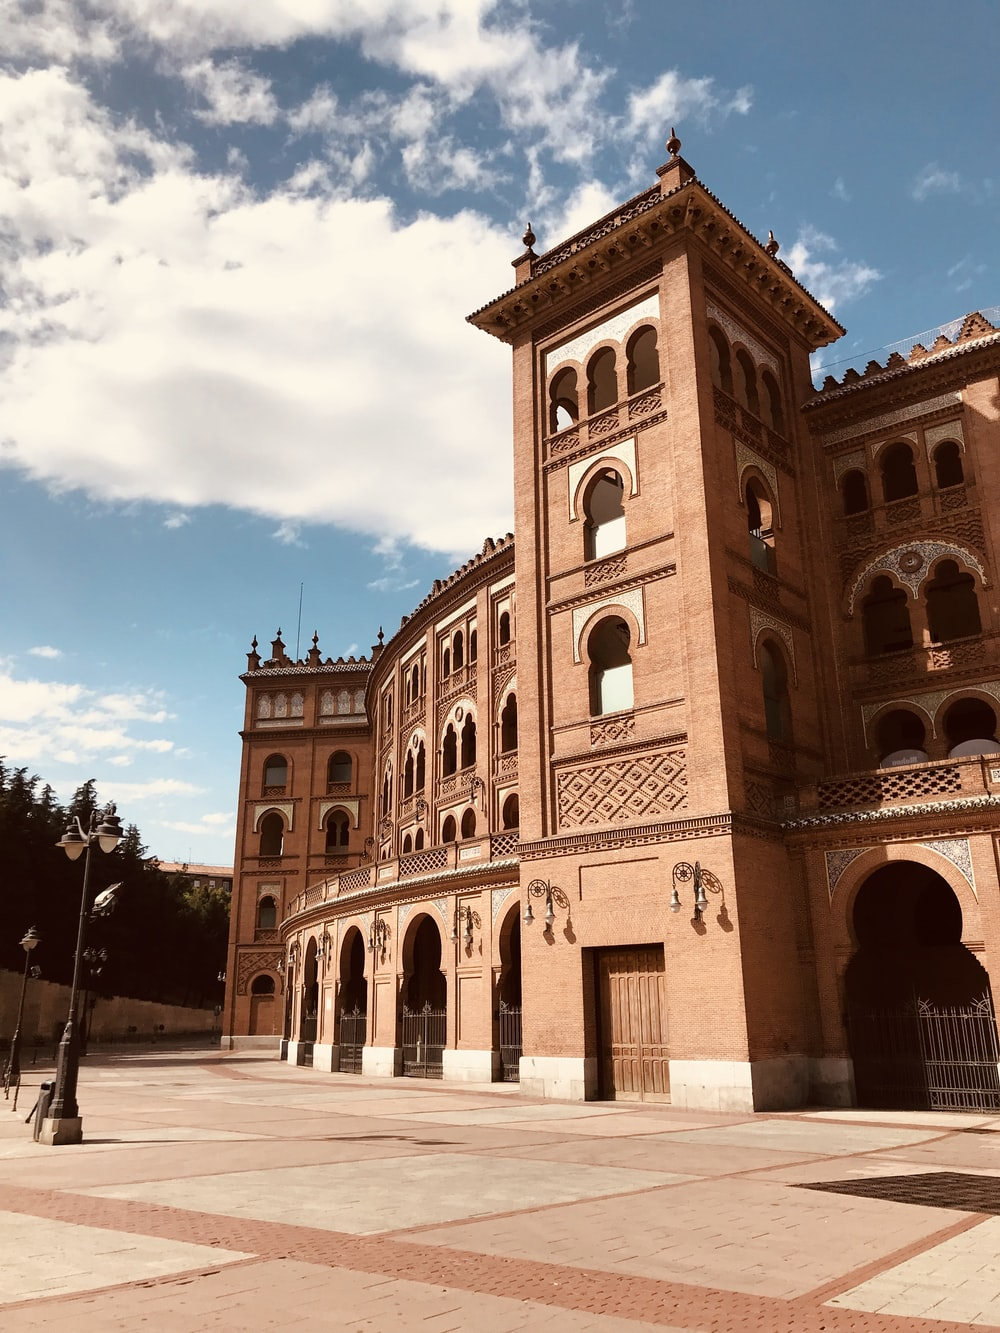 Las Ventas in Madrid under white and blue sky during daytime